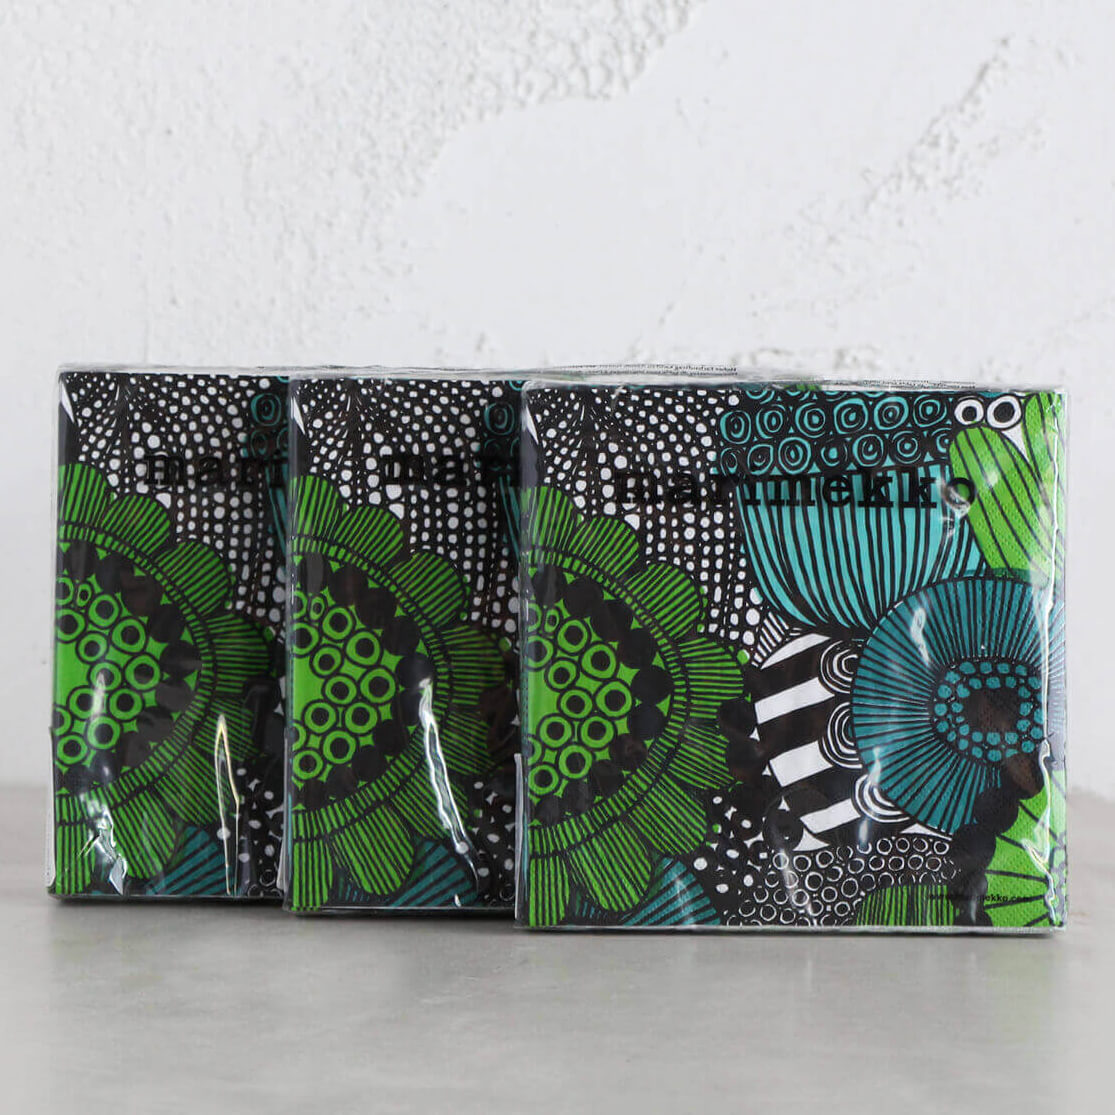 MARIMEKKO  |  SIIRTOLAPUUTARHA PAPER NAPKINS  |  GREEN BLACK  |  LUNCH SERVIETTES BUNDLE OF 3